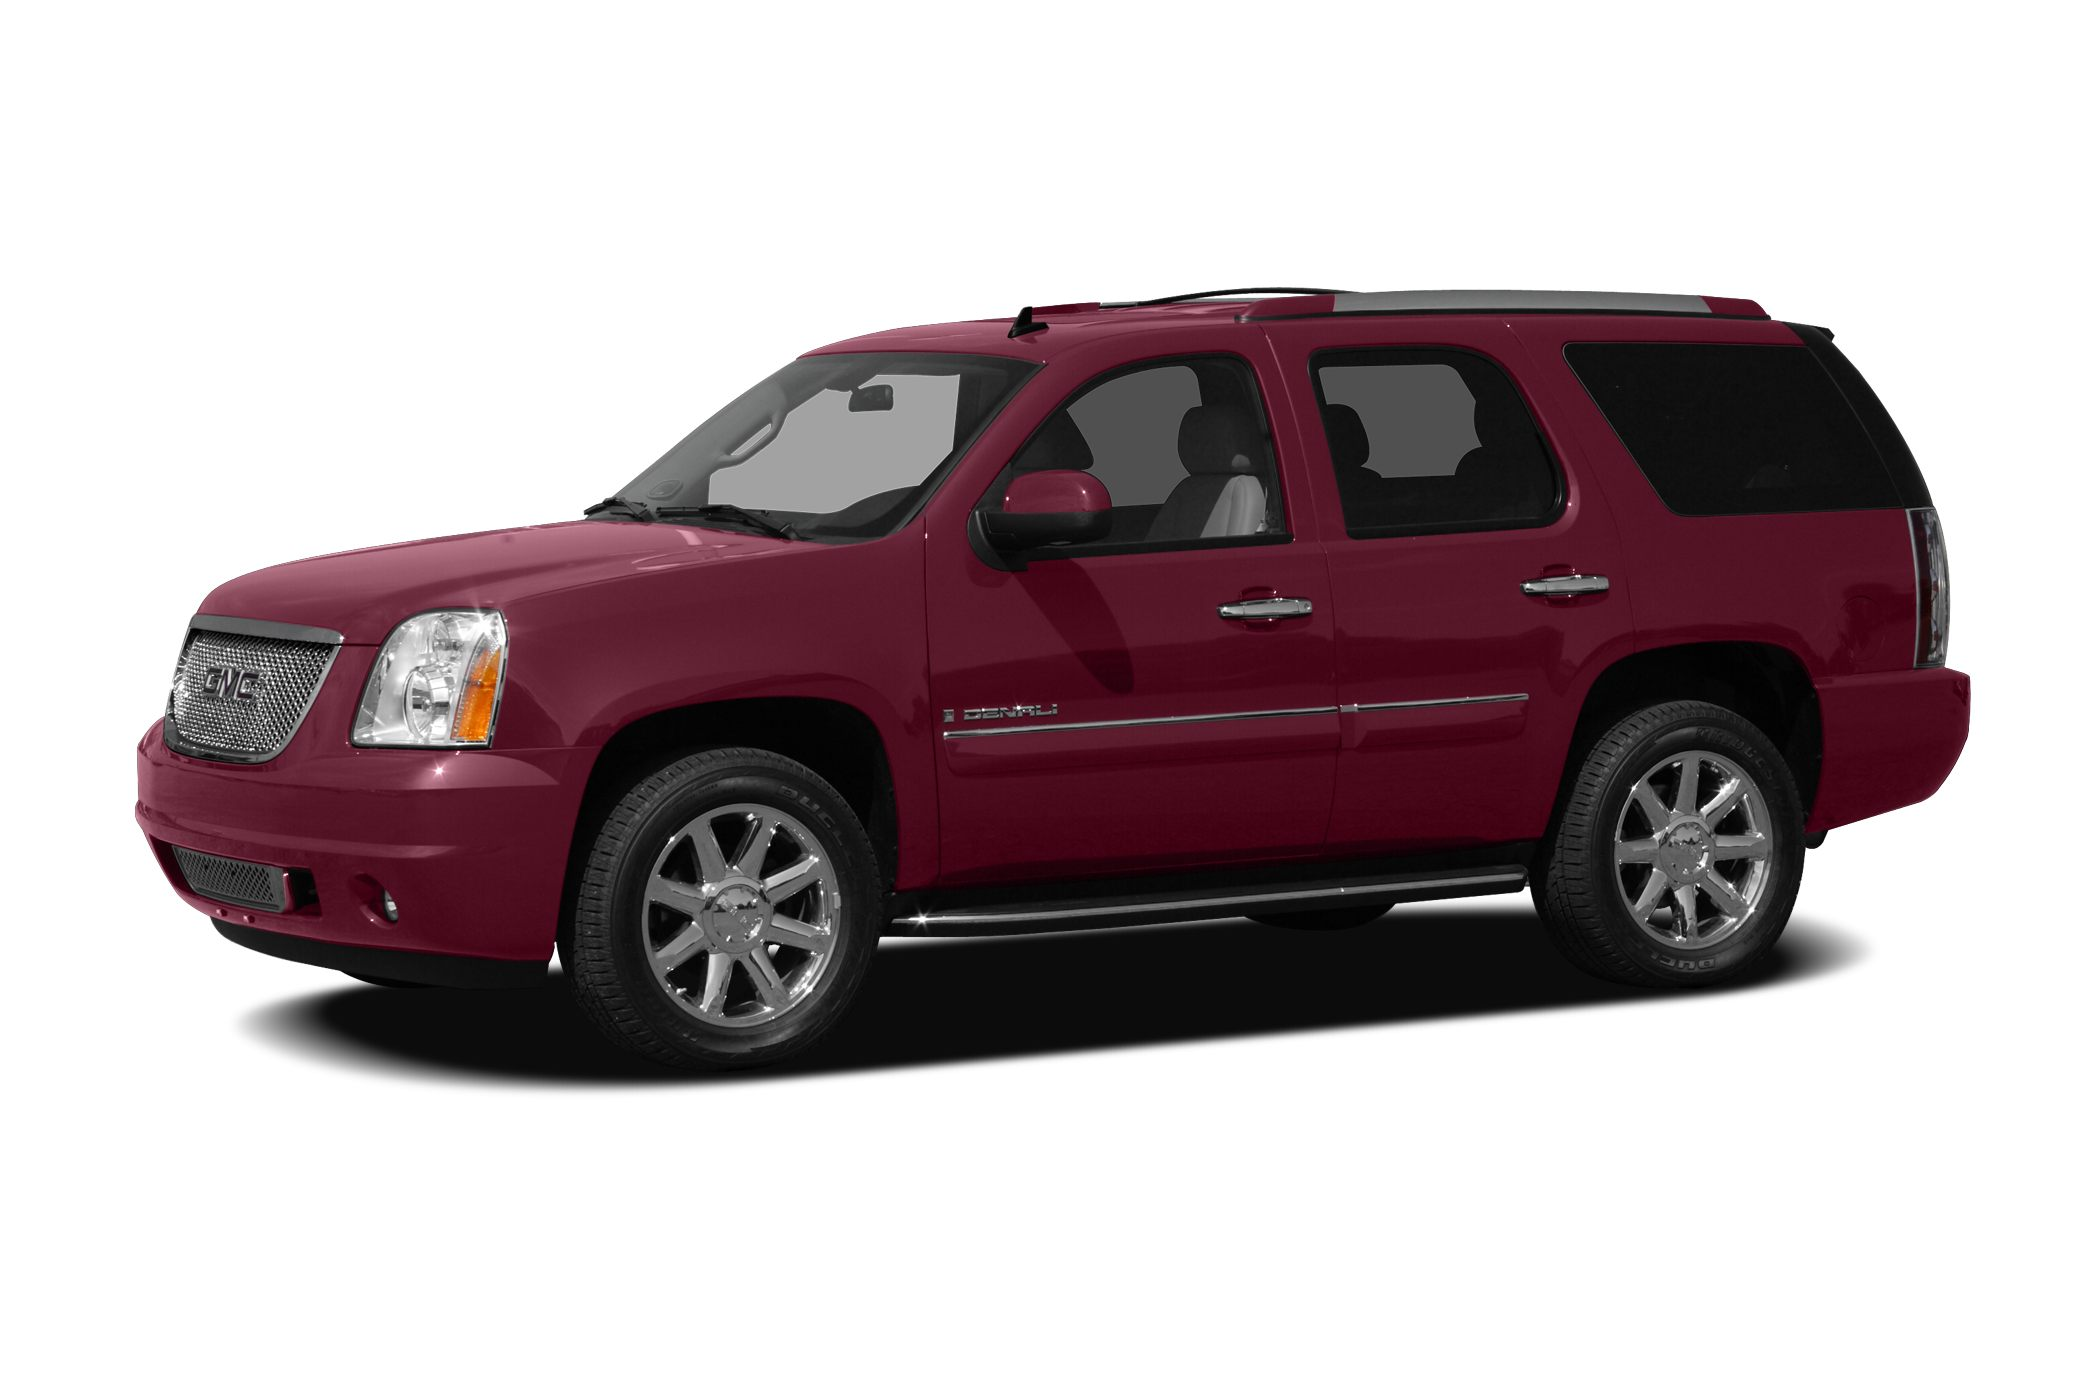 2008 GMC Yukon Denali ITS OUR 50TH ANNIVERSARY HERE AT MARTYS AND TO CELEBRATE WERE OFFERING THE